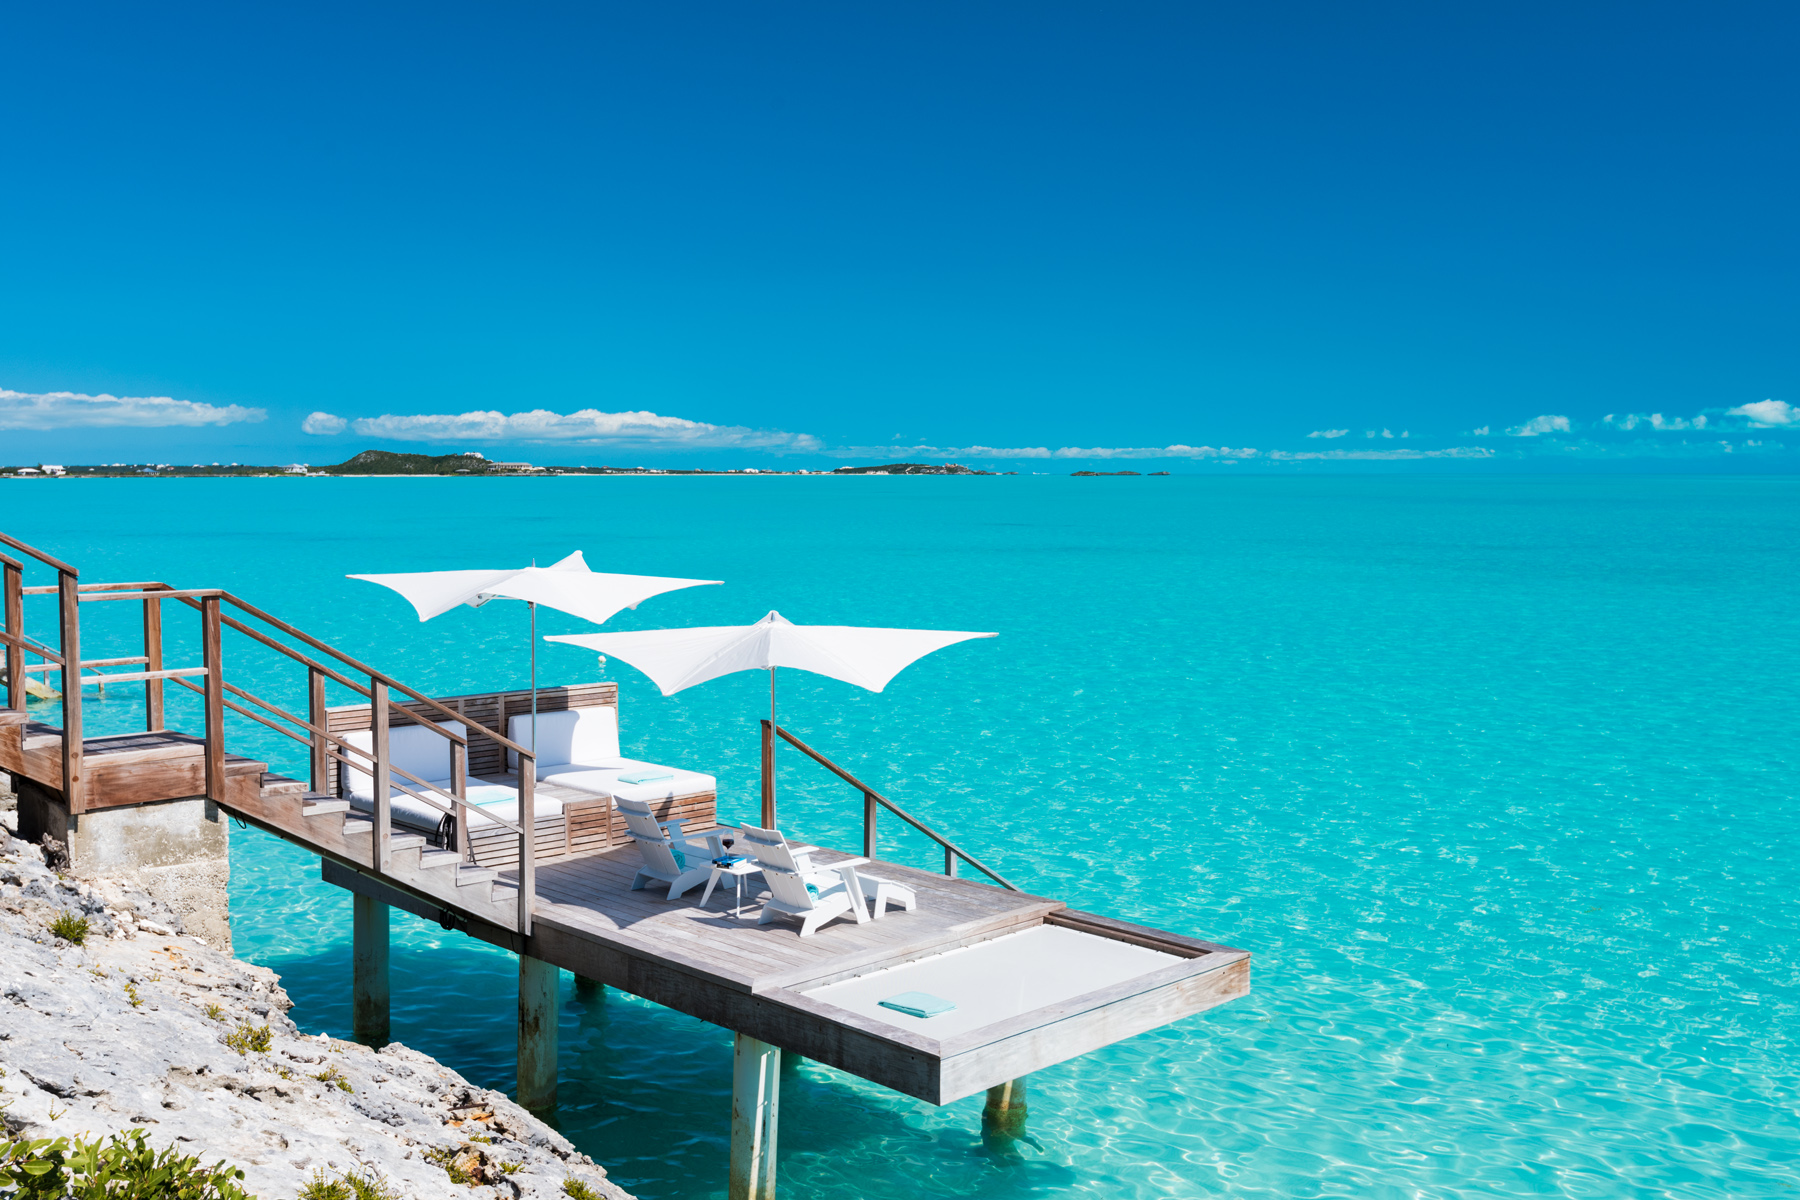 Single Family Home for Sale at Gansevoort Villa 5102 - 4 Bedroom Design Waterfront Turtle Tail, TCI Turks And Caicos Islands